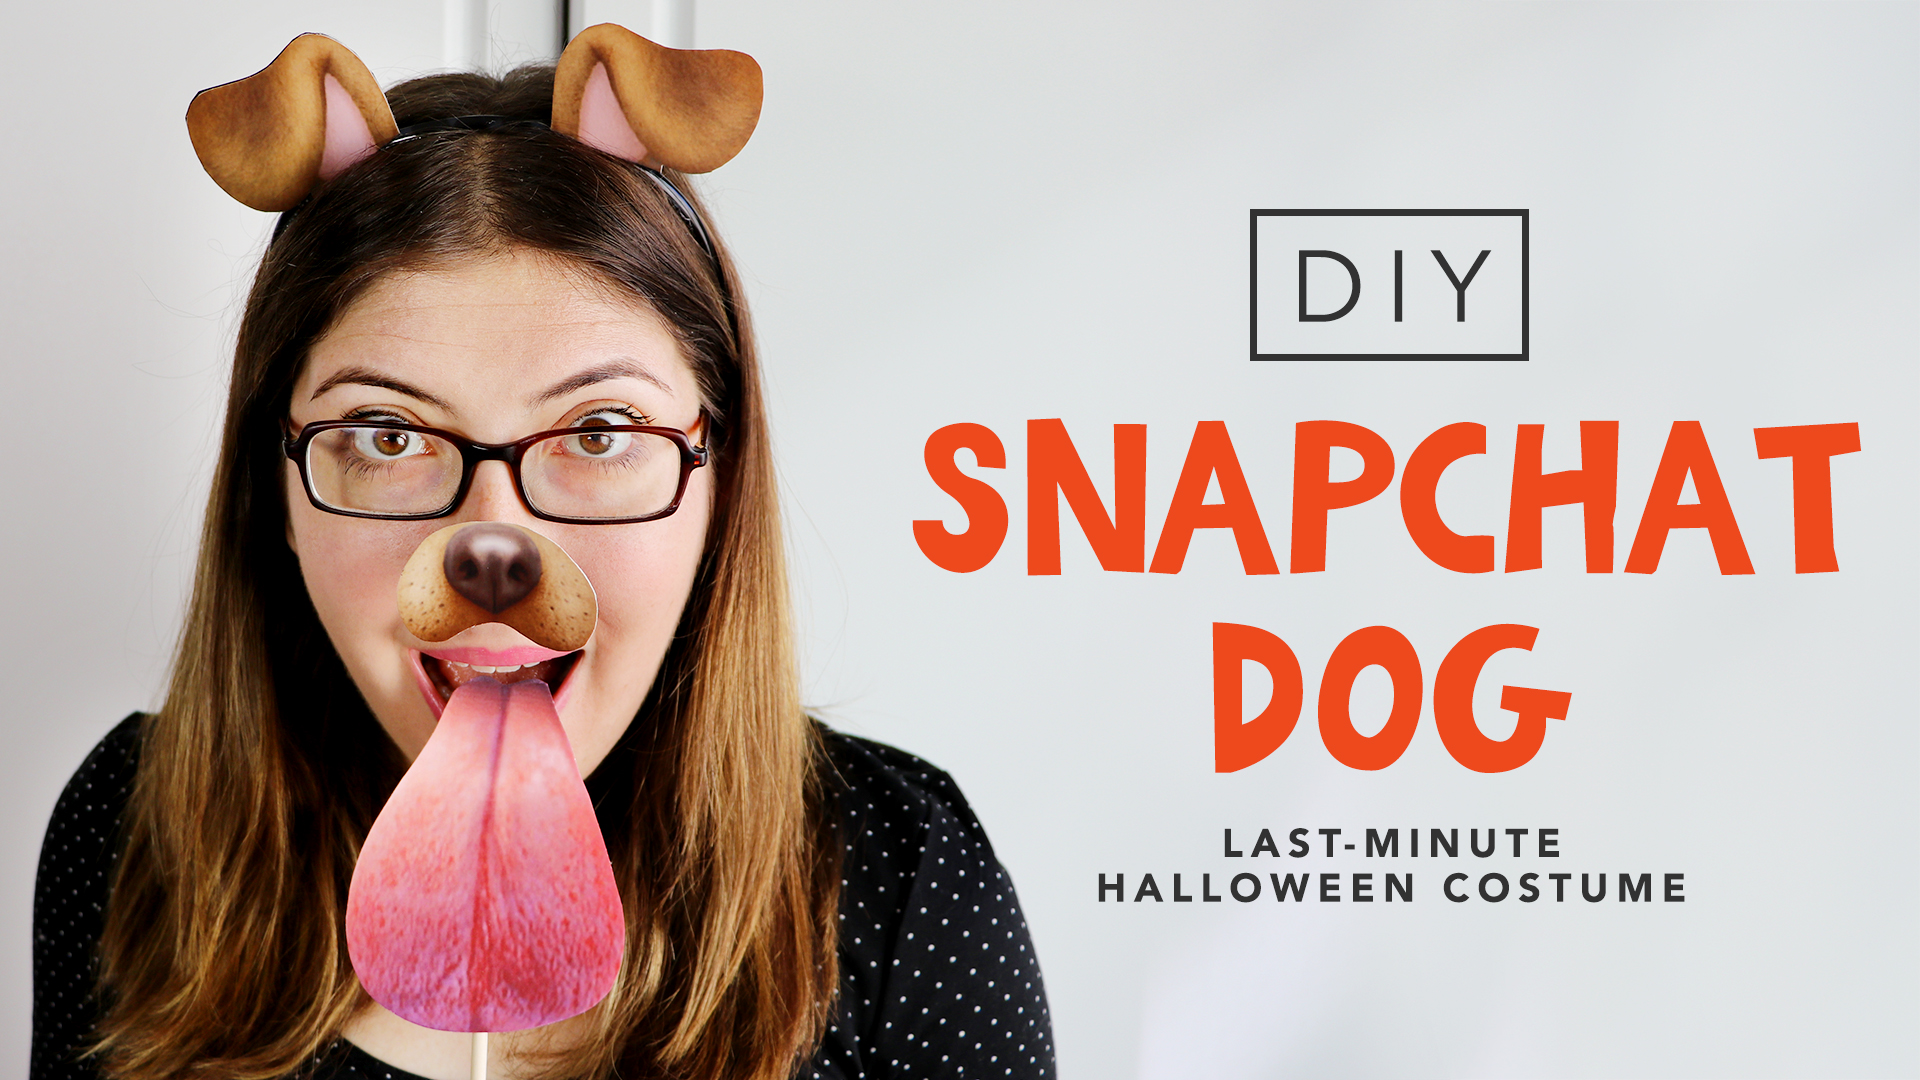 image regarding Halloween Head in a Jar Printable named Do-it-yourself Ultimate-Second Snapchat Canine Dress! - Halloween 2016